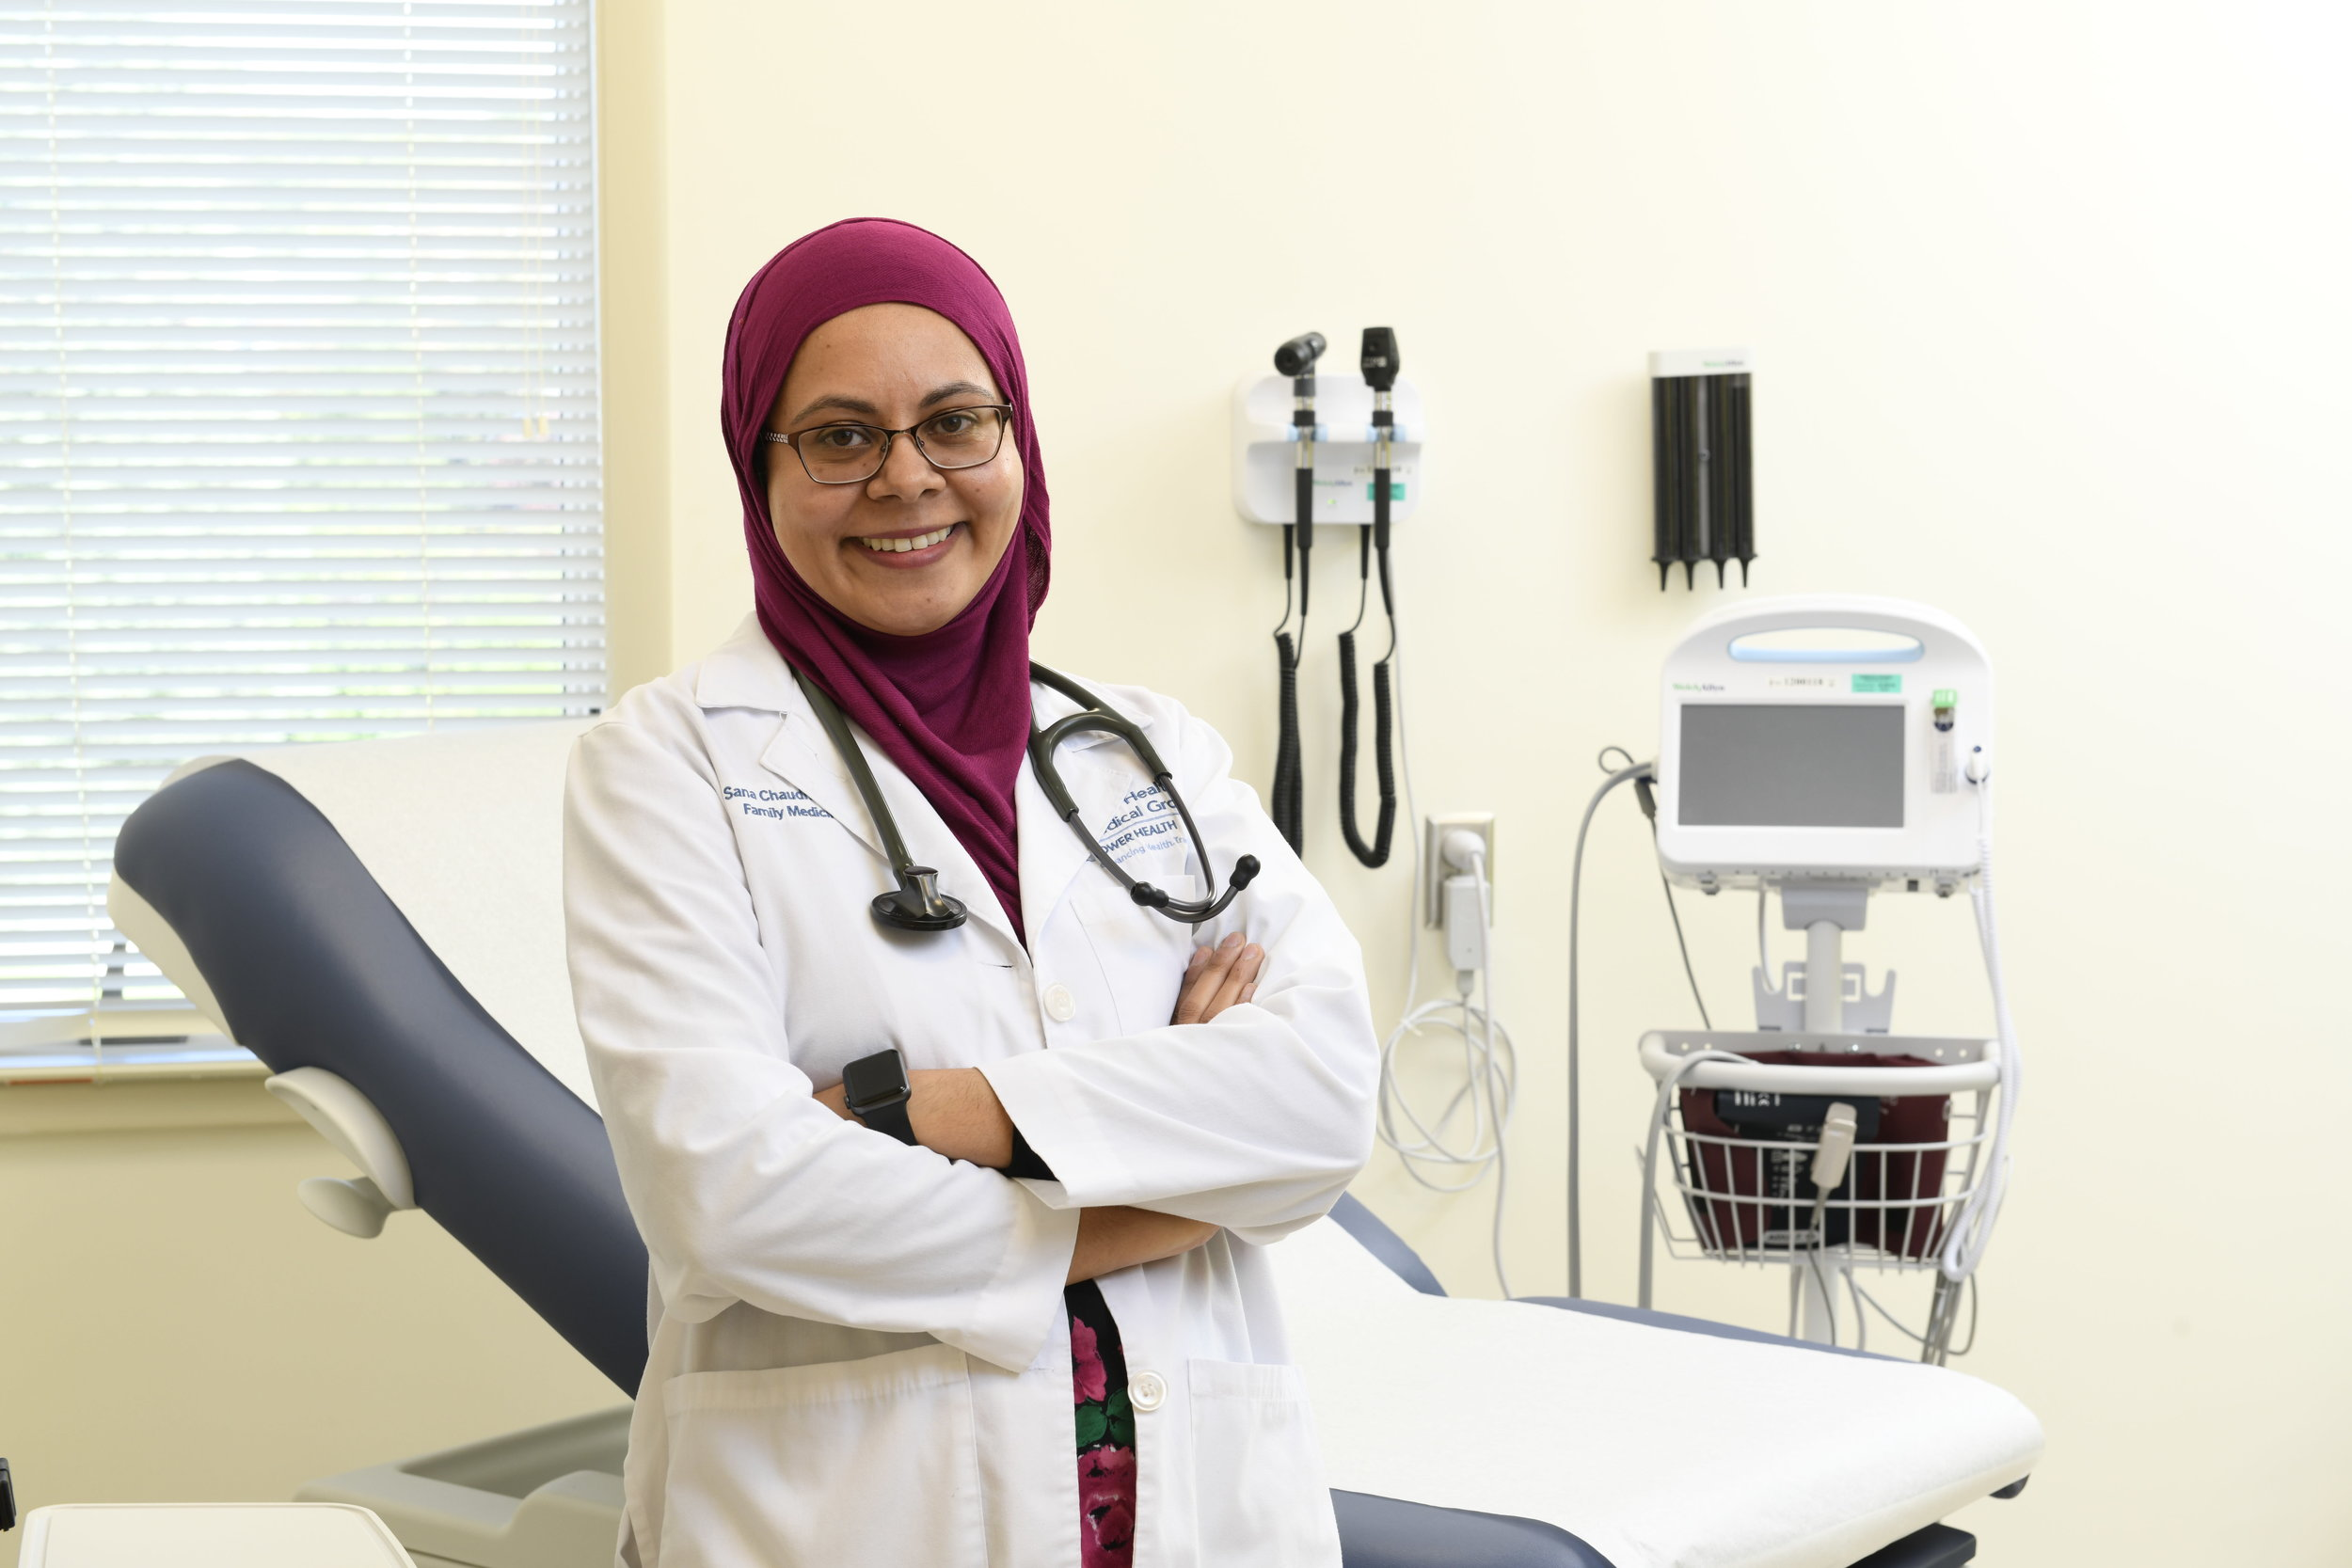 ASK ME HOWTOWER HEALTH PROVIDES A WORK LIFE BALANCE APPROACH TO THEIR PHYSICIANS - - Sana Chaudhry, MD